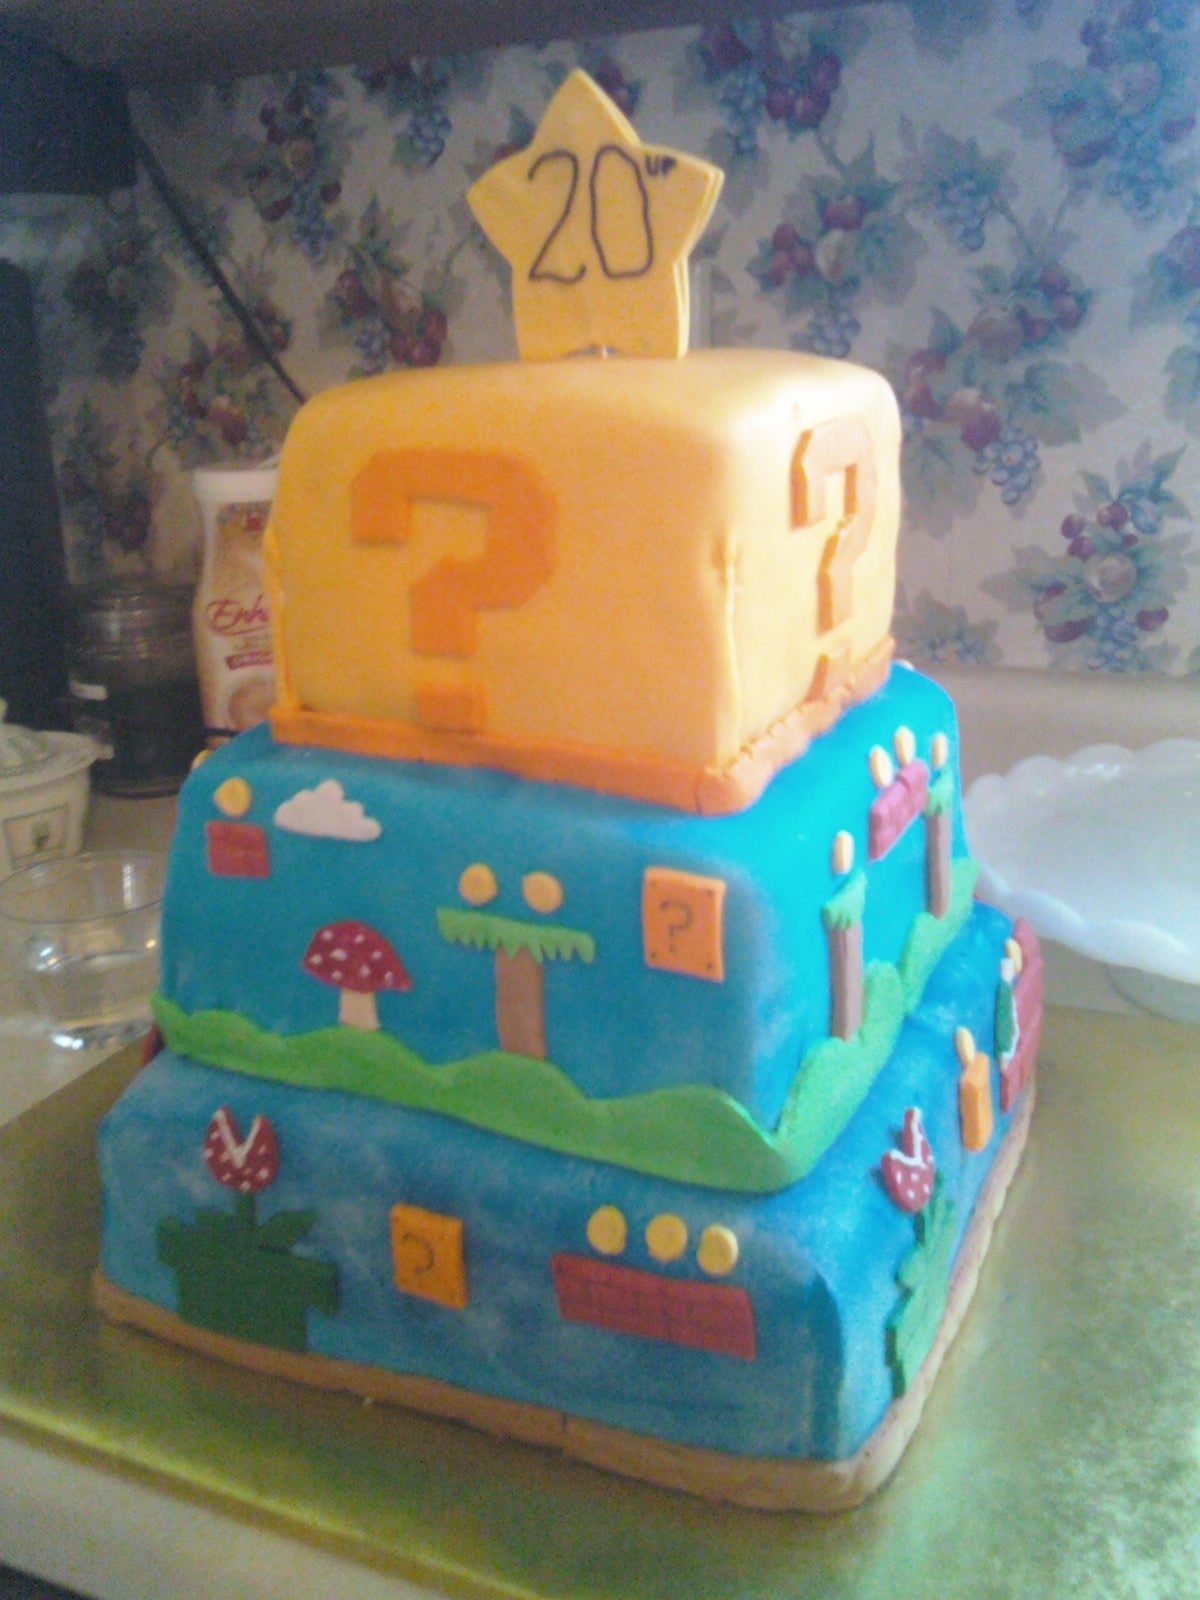 Awe Inspiring Super Mario Birthday Cake With Pictures Instructables Personalised Birthday Cards Veneteletsinfo